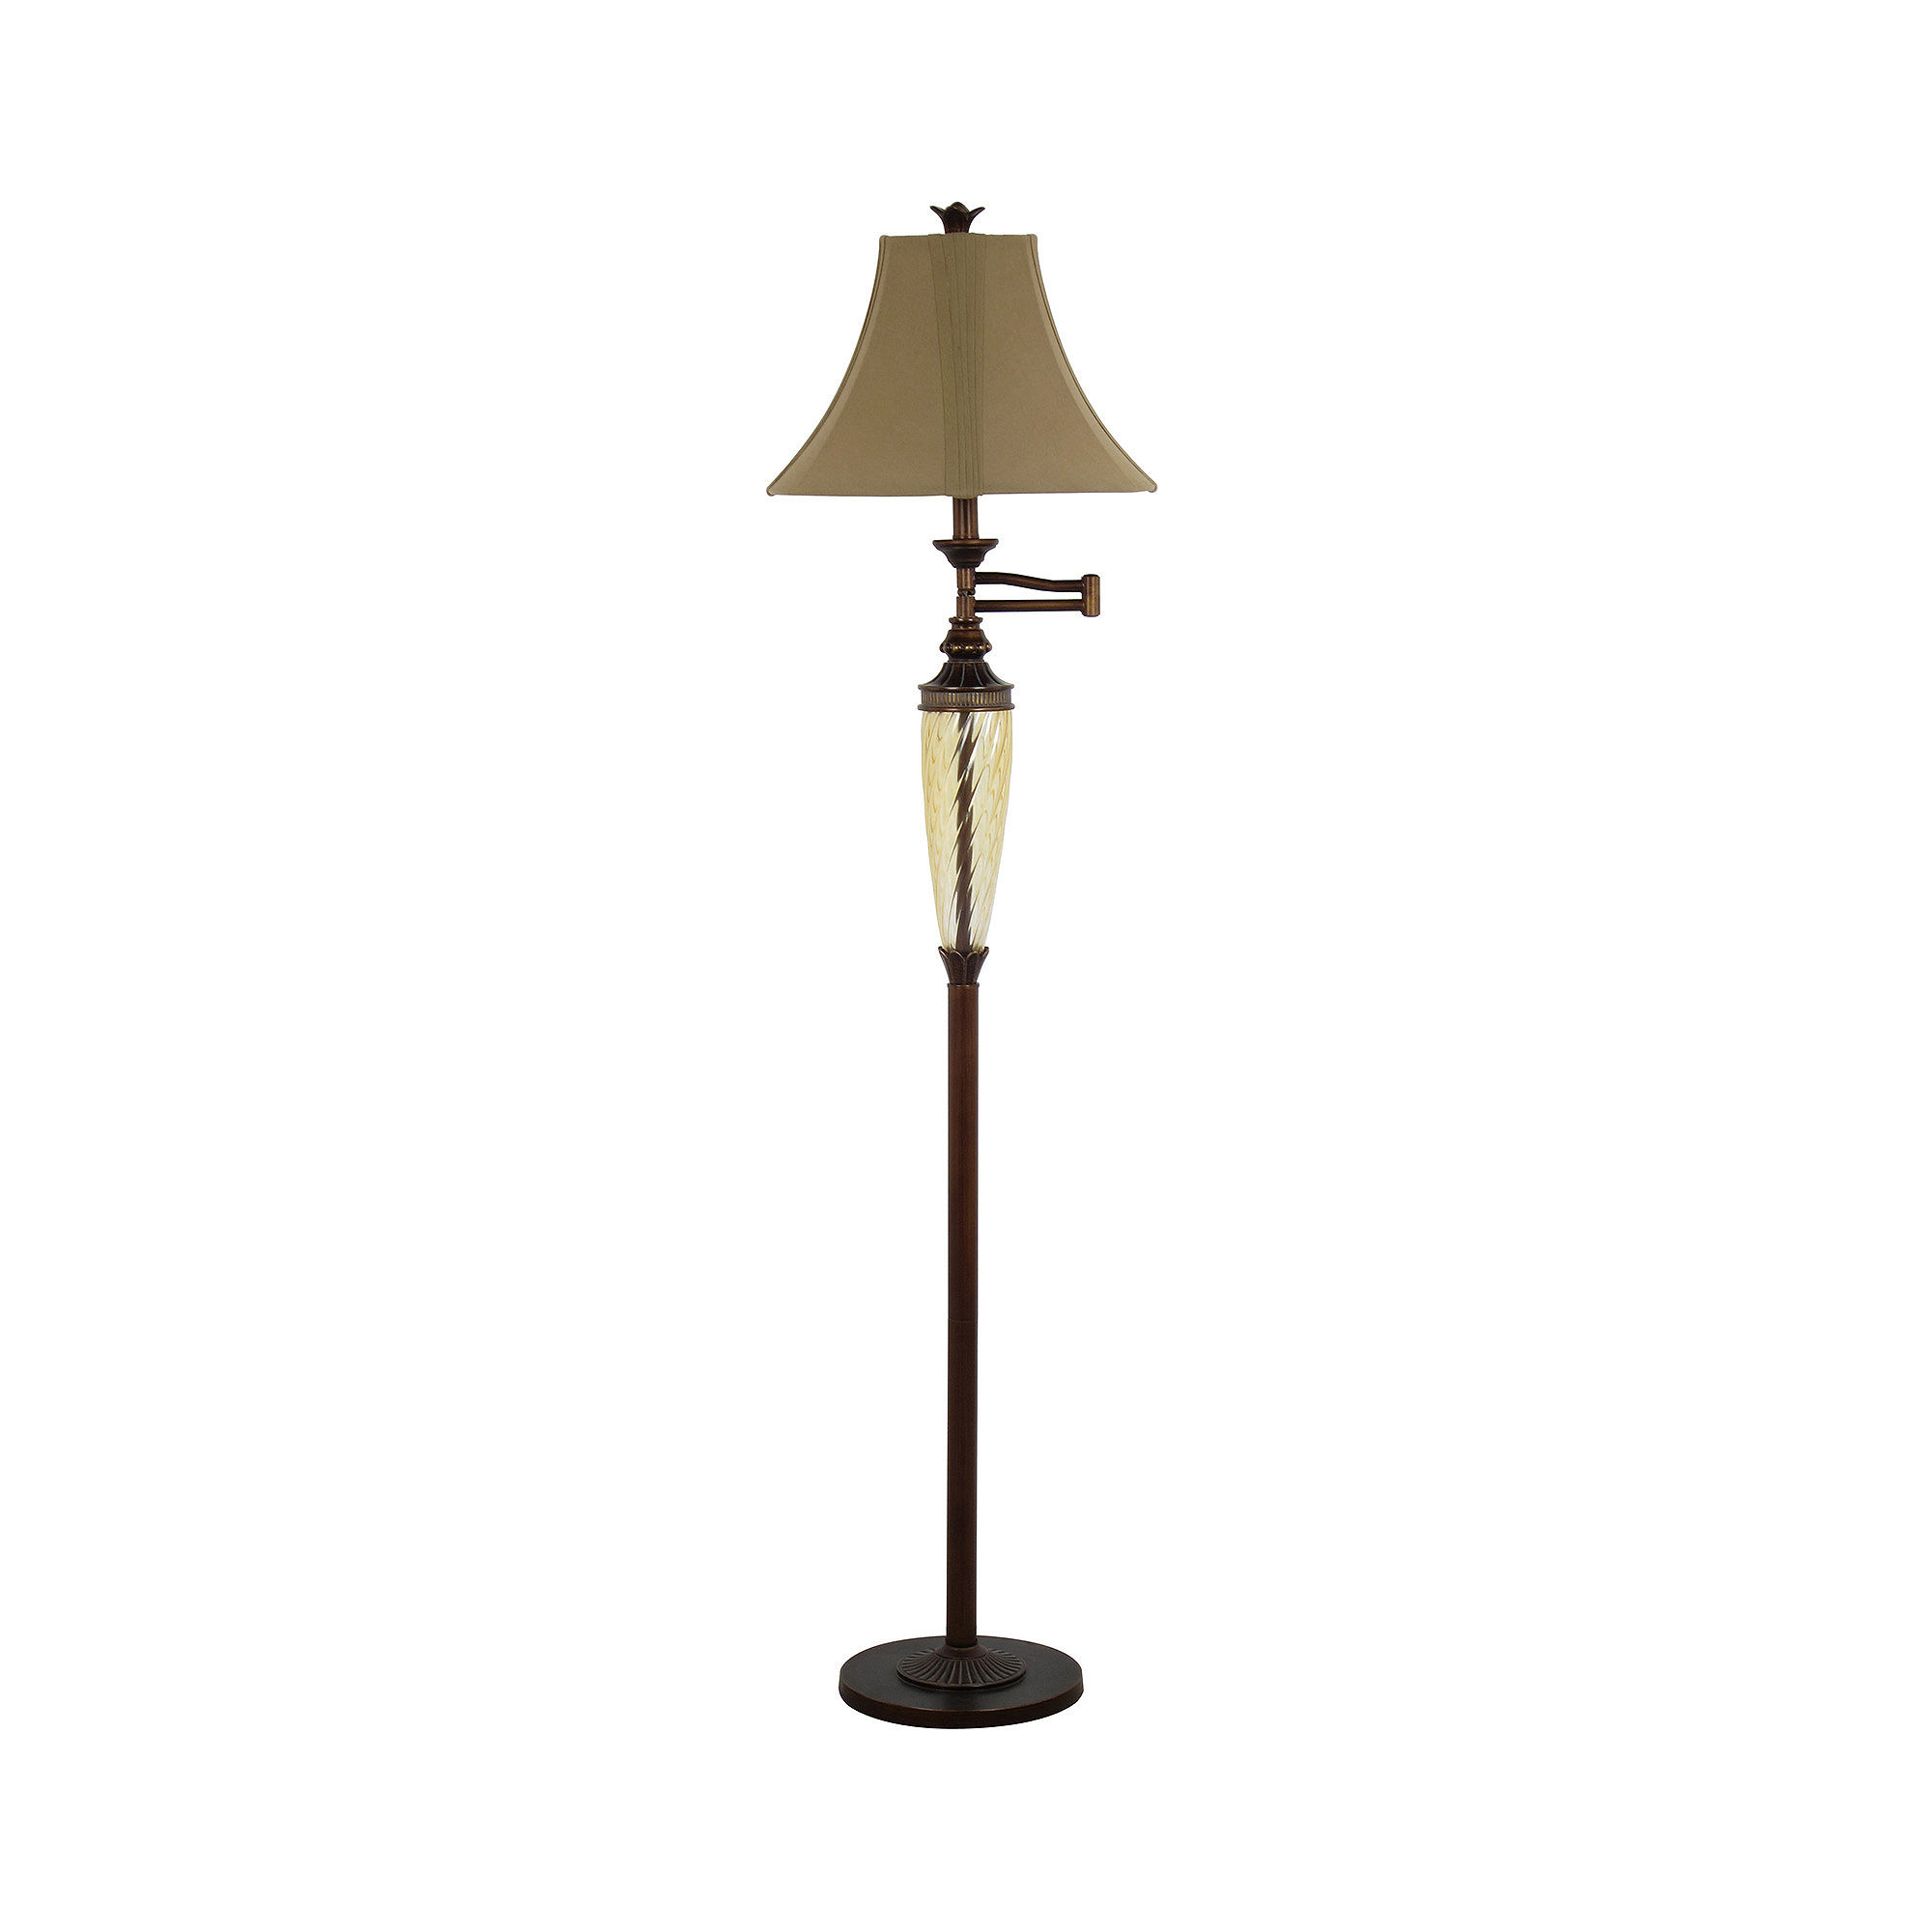 jcpenney floor lamps on sale search. Black Bedroom Furniture Sets. Home Design Ideas